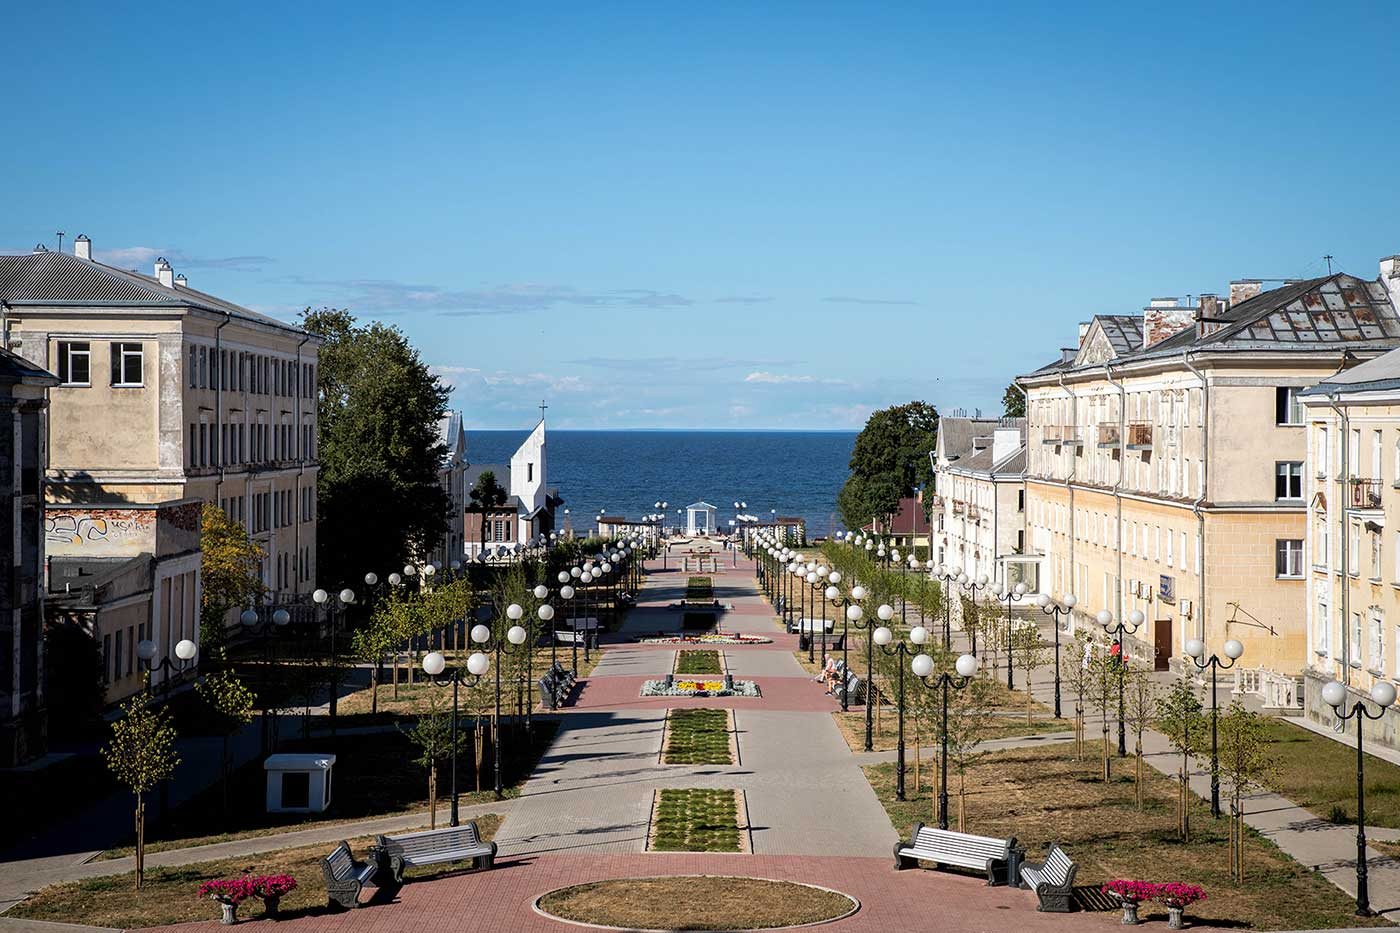 The view down the pedestrianised Marine Boulevard in Sillamäe.